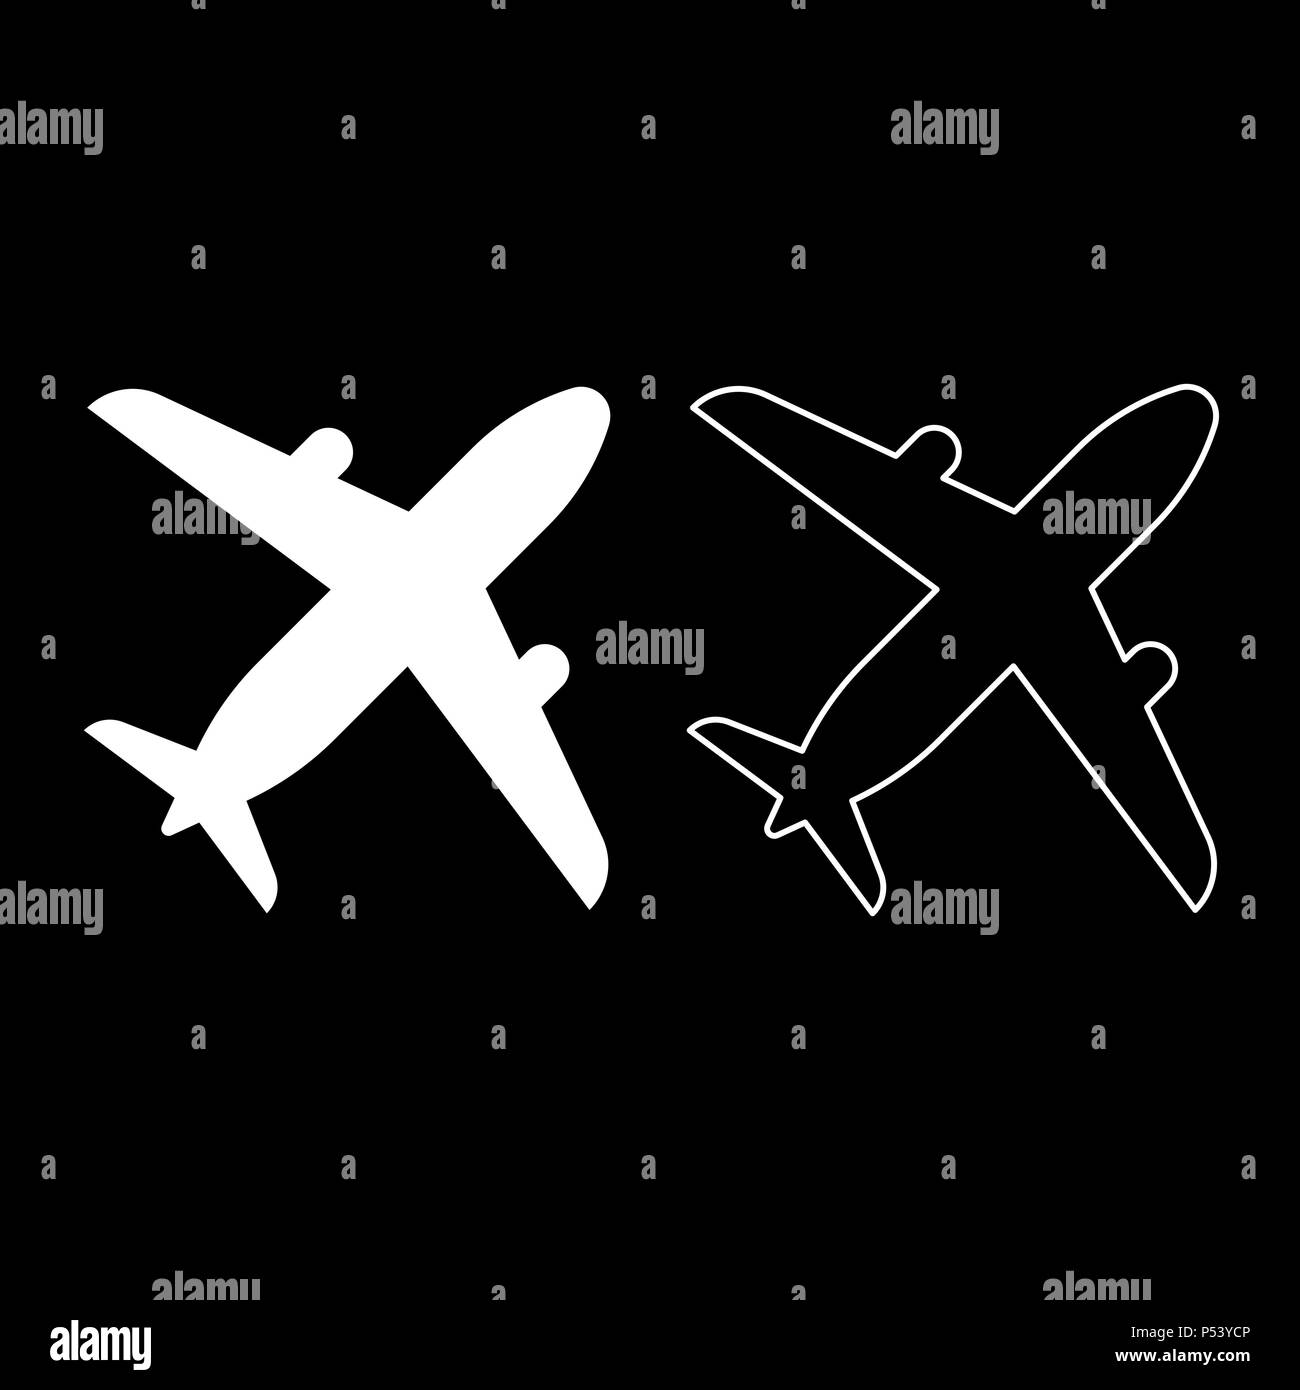 Airplane icon set white color vector I flat style simple image - Stock Image